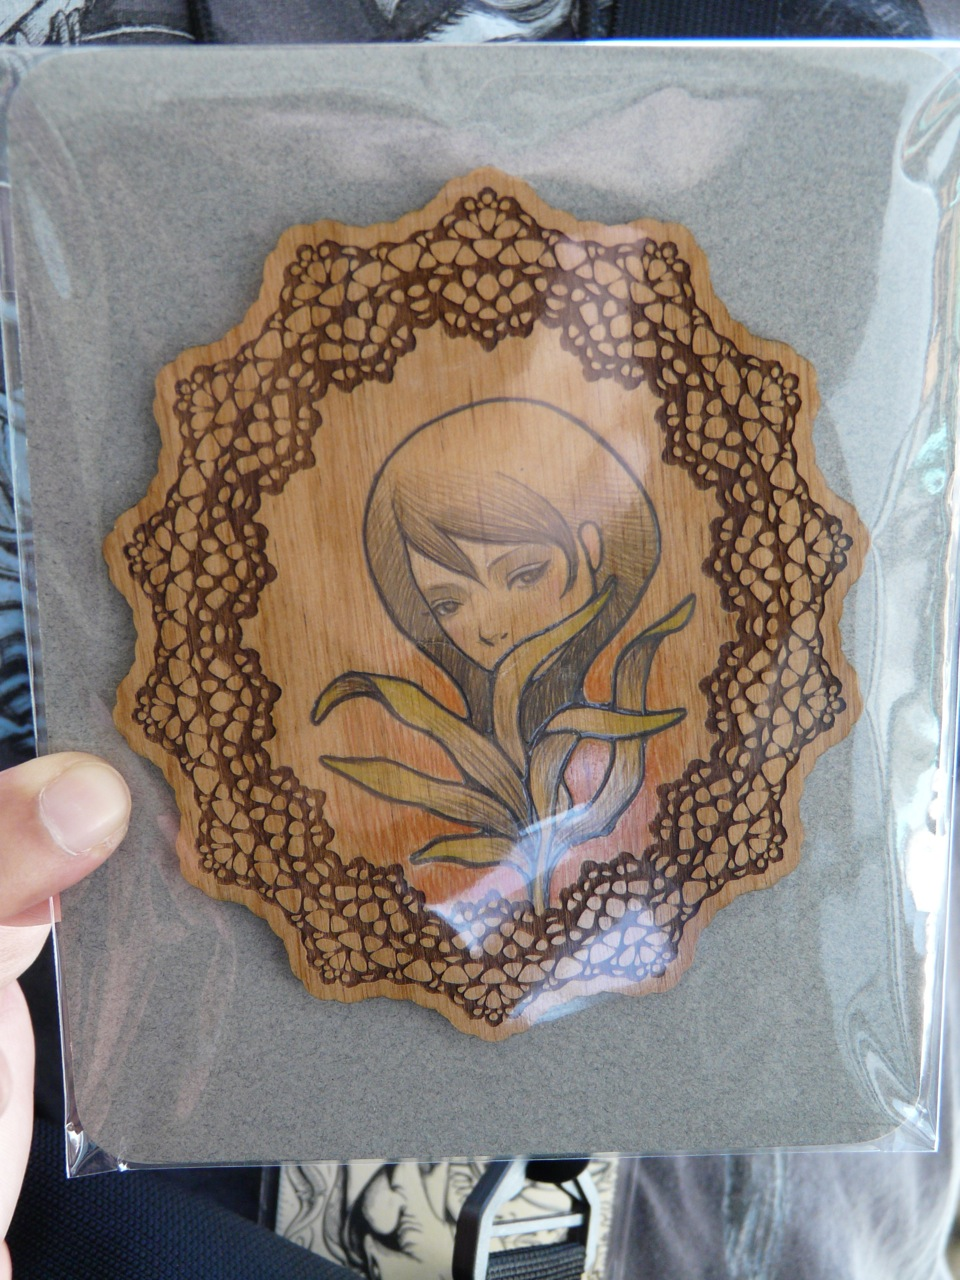 Original piece from Audrey Kawasaki